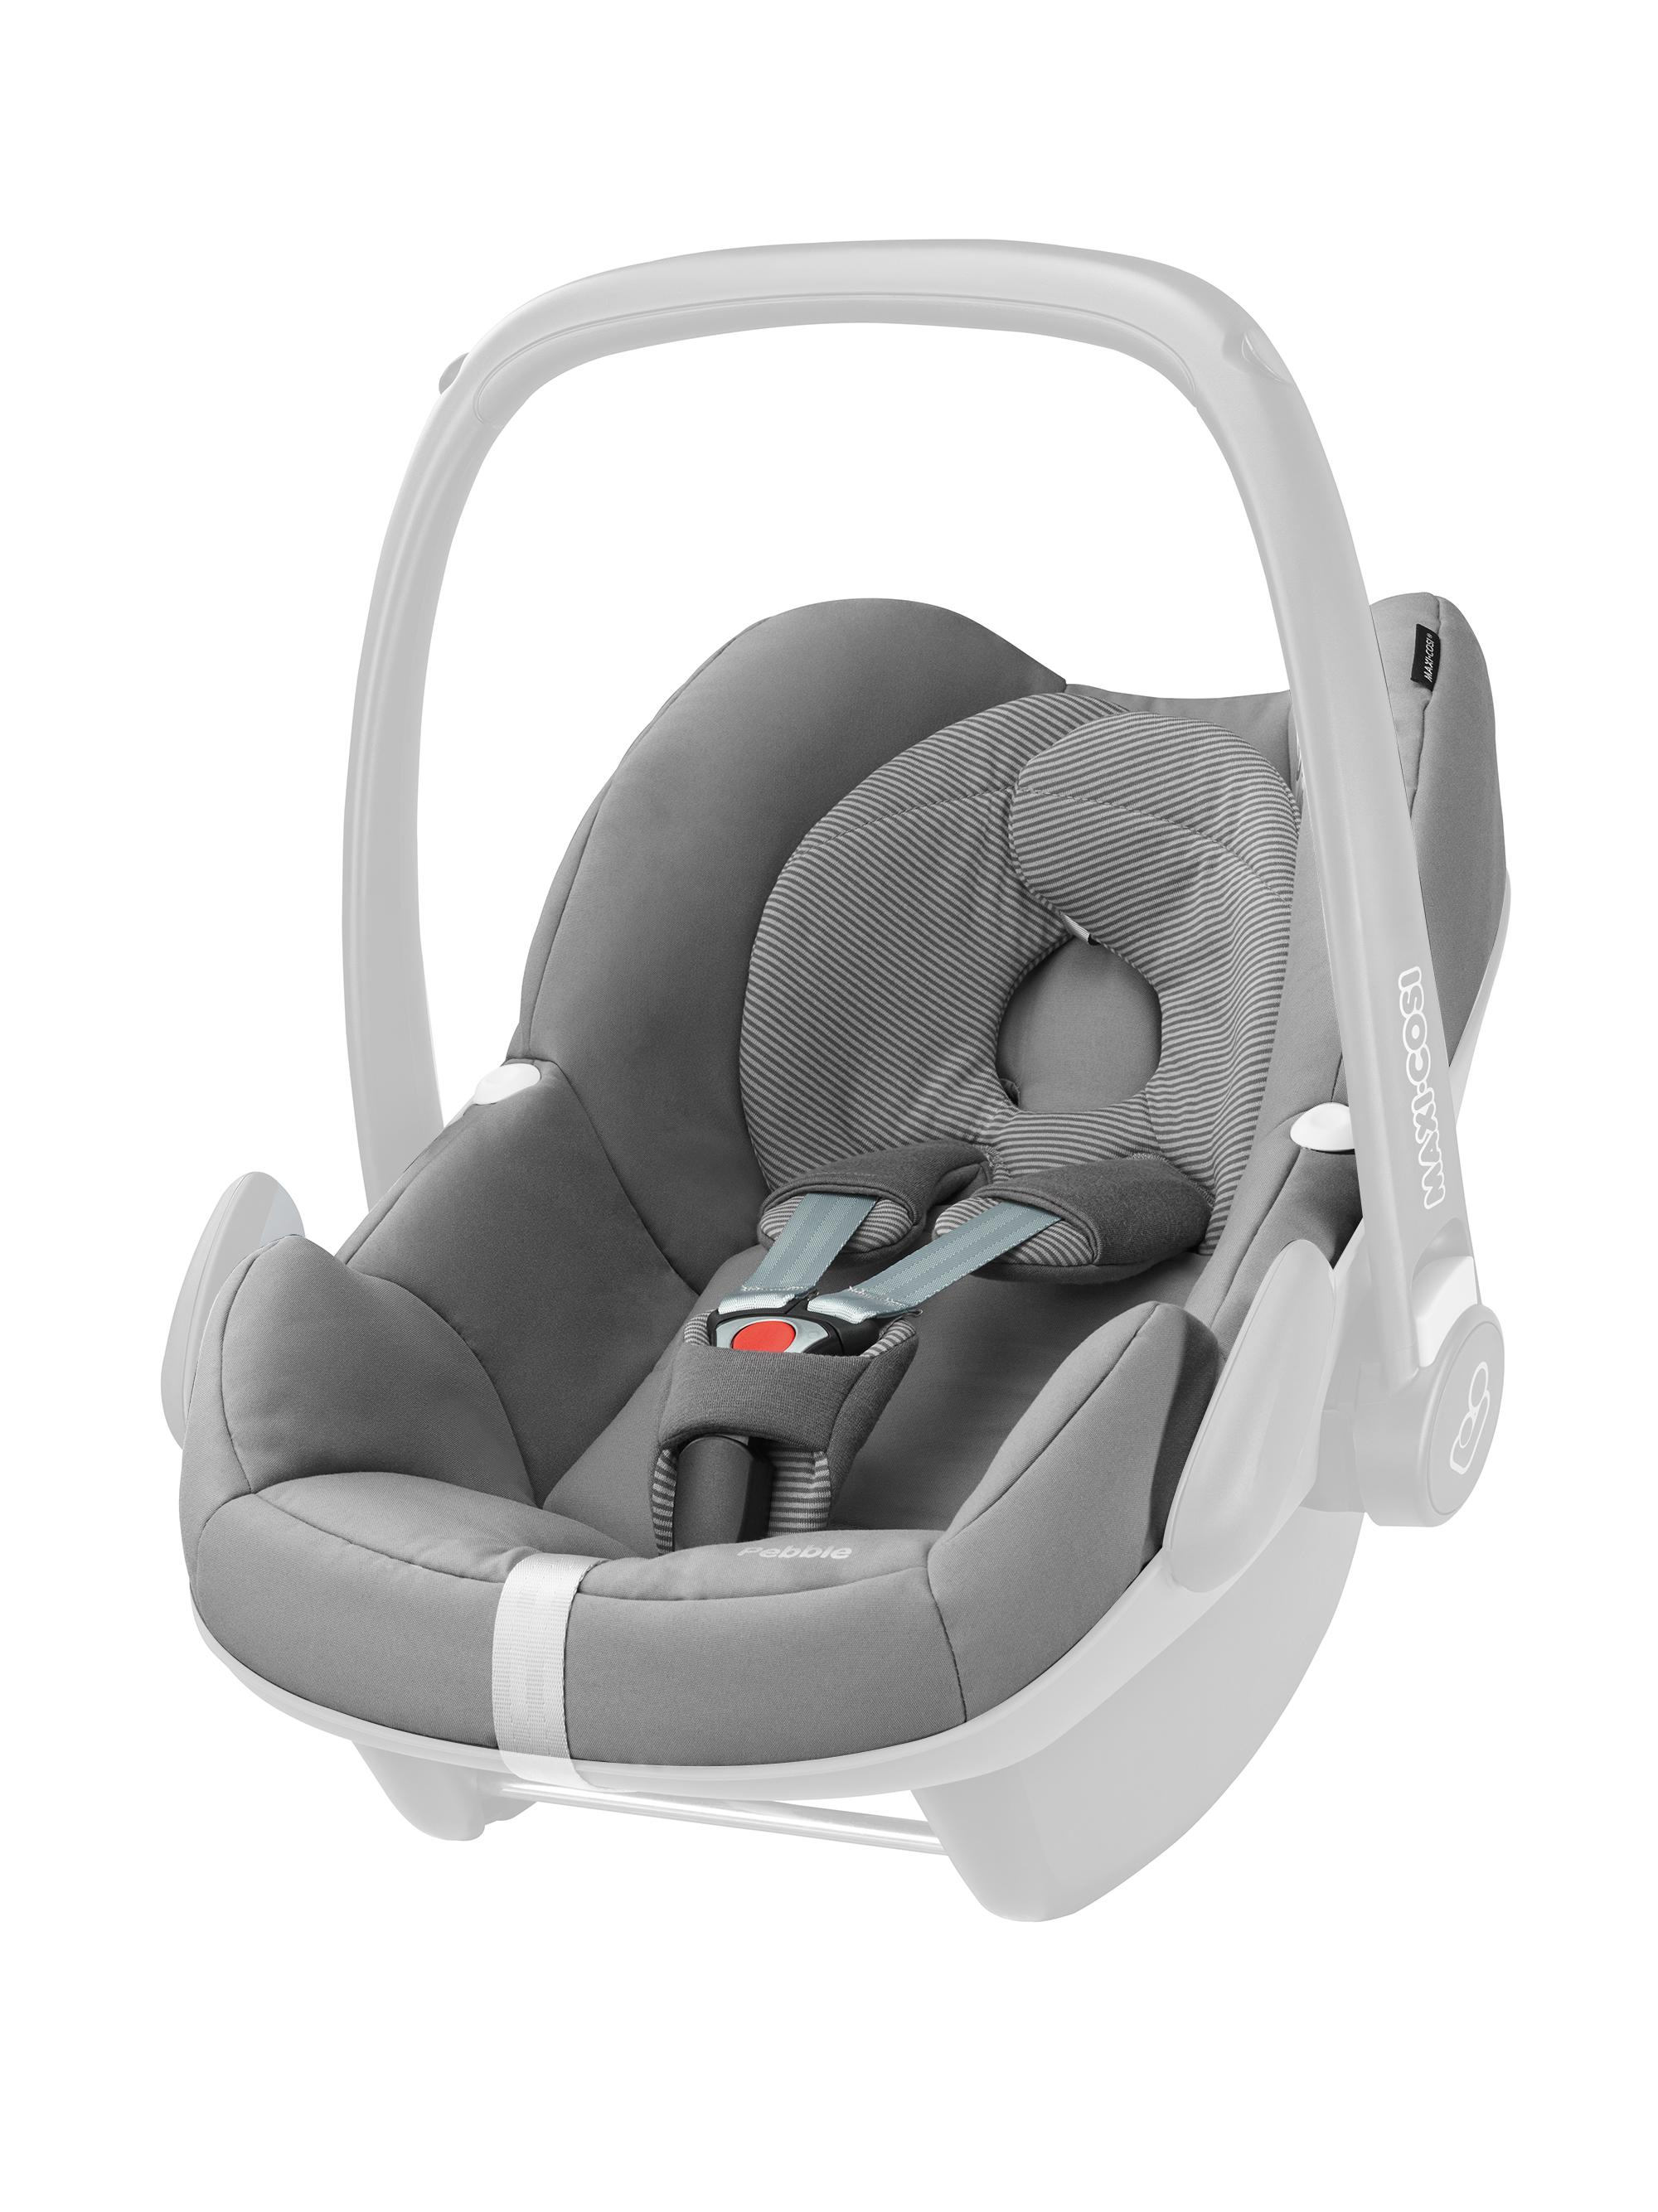 Maxi-Cosi Pebble Car Seat Replacement Cover, Concrete Grey: Amazon ...